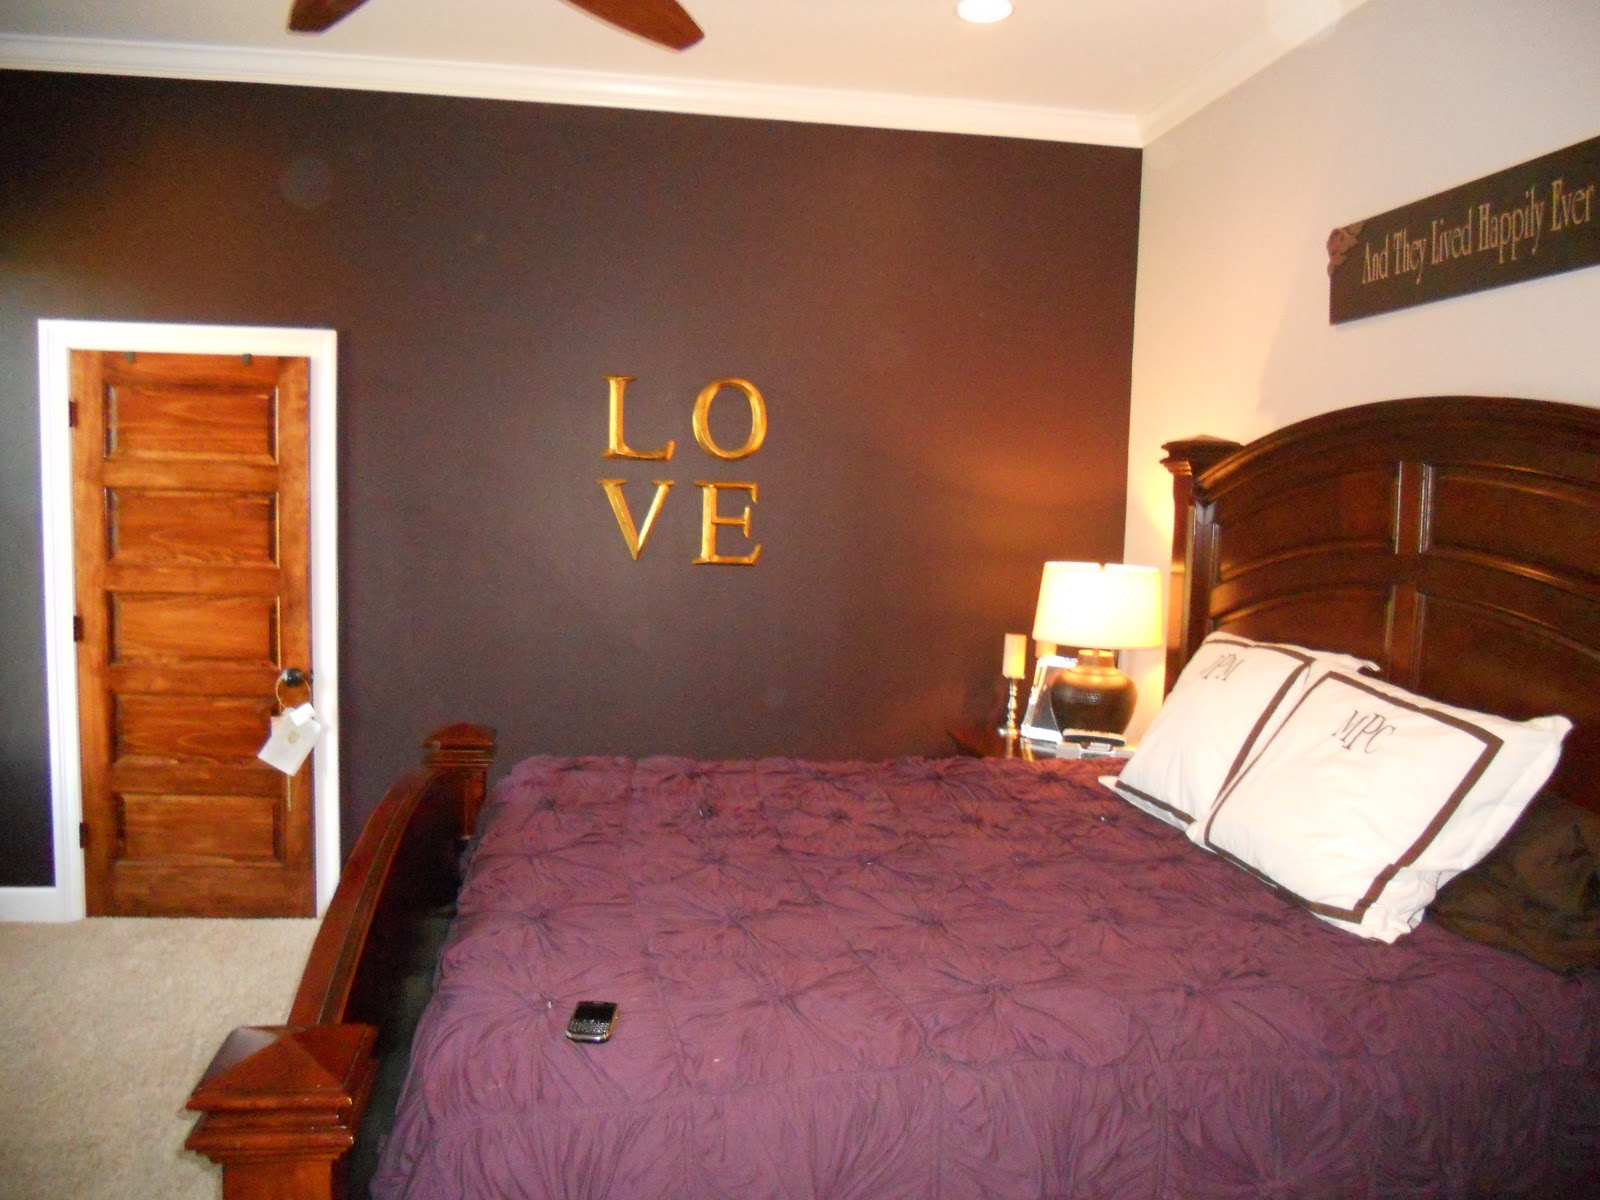 Master bedroom paint accent wall - Http 1 Bp Blogspot Com _eezdn8zwepa Tkx6ah2tuai